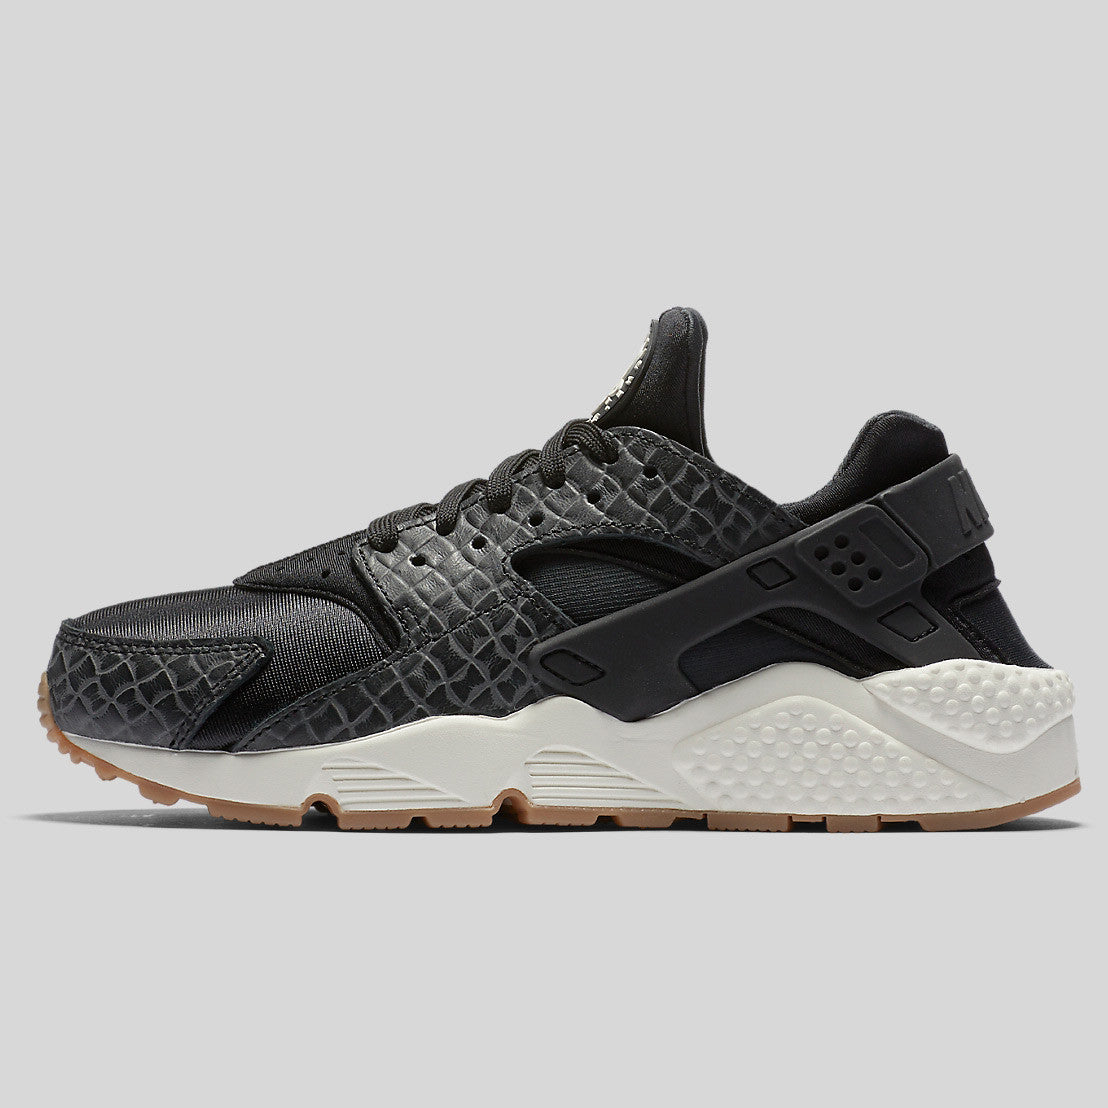 official photos 604de ccbbd Nike Wmns Air Huarache Run PRM Black Sail Gum Med Brown (683818-011)